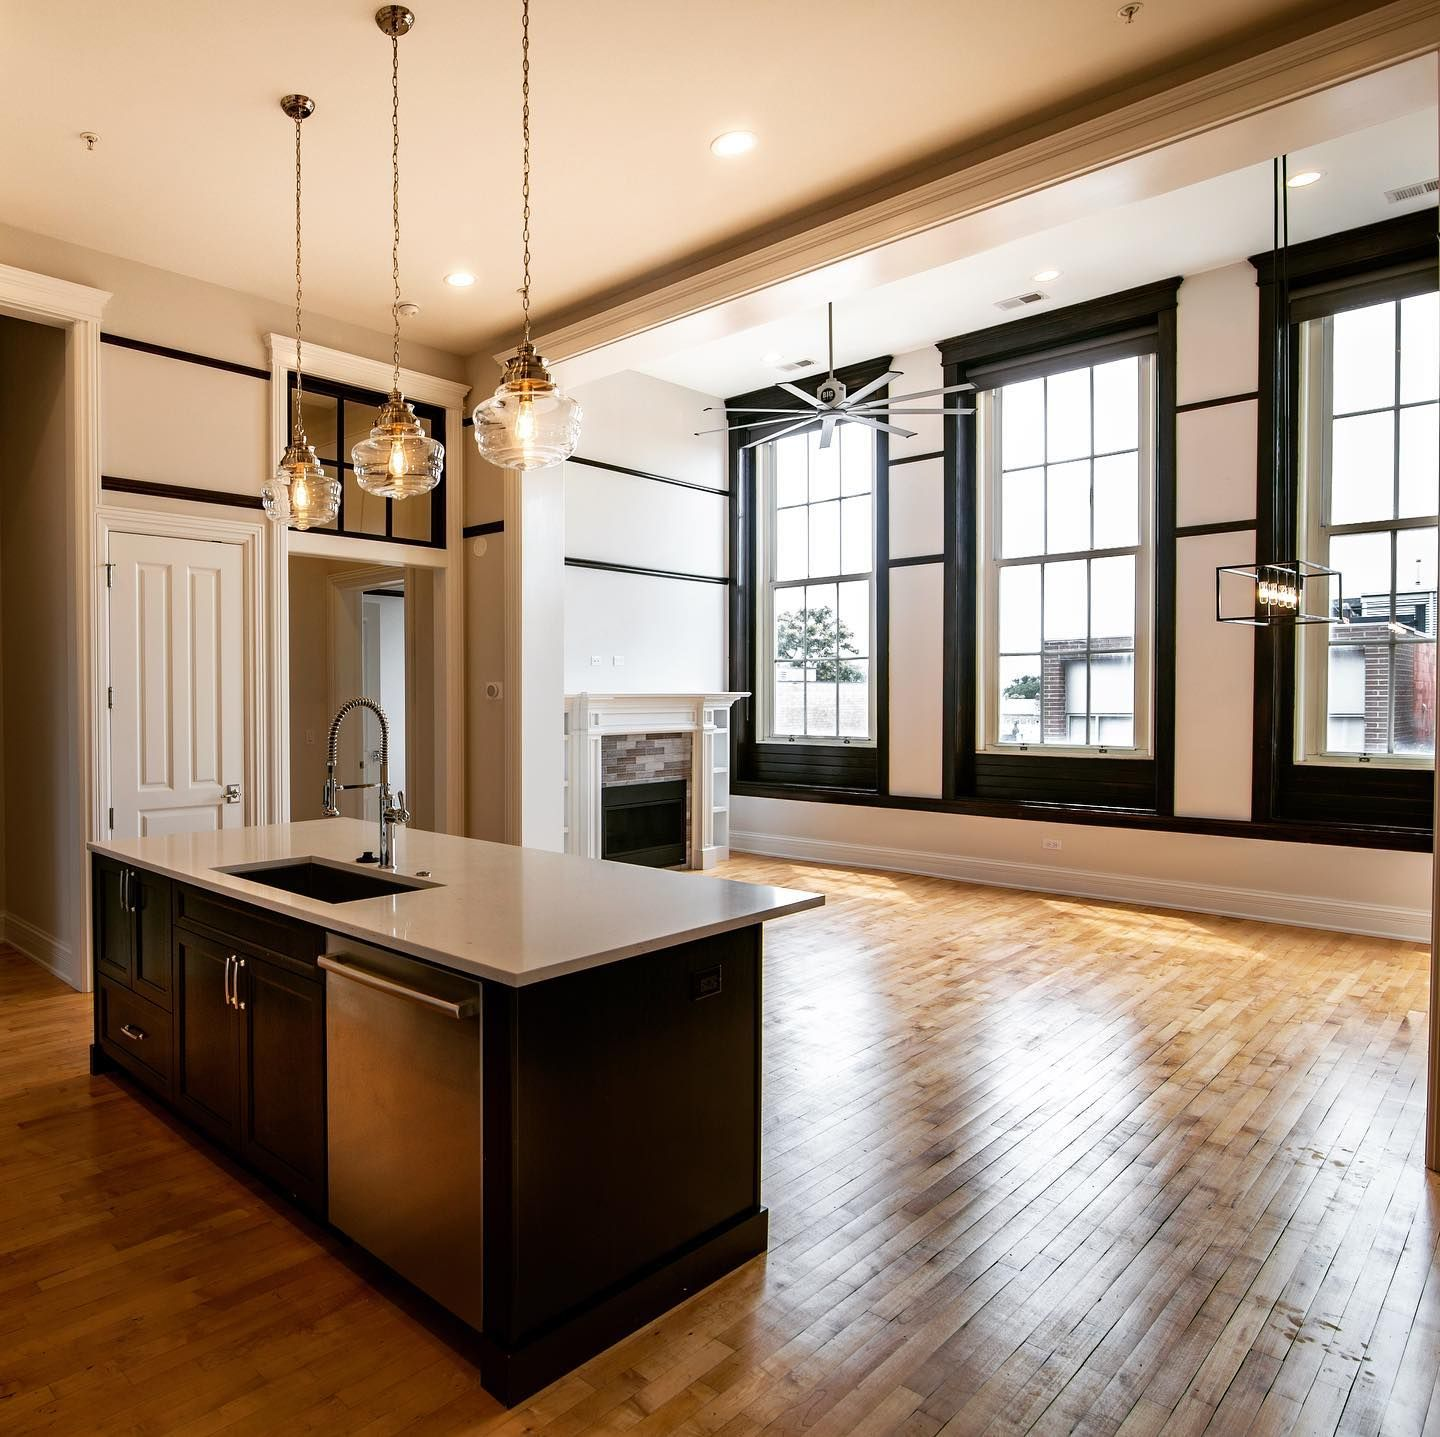 739 N Ada St, Chicago, IL, 60642 In 2020